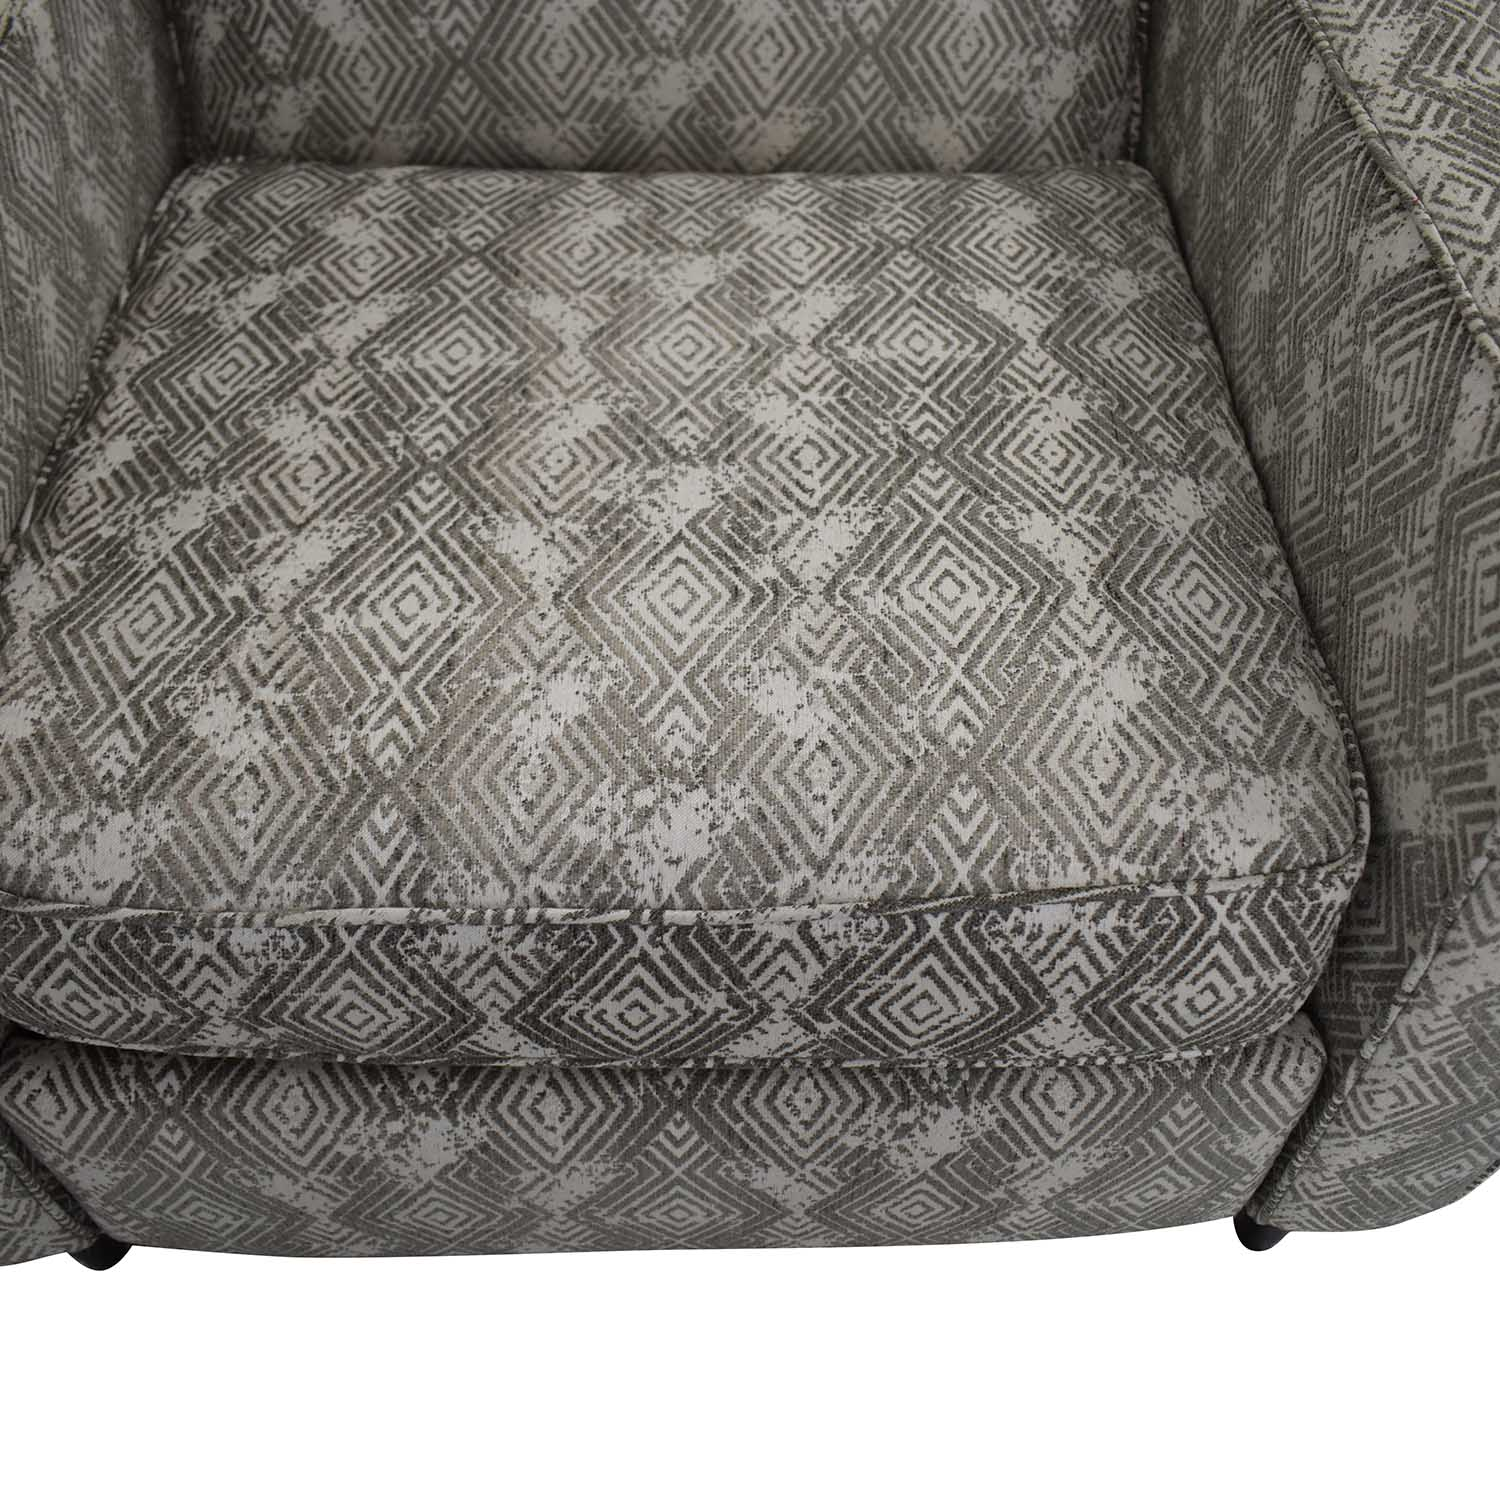 buy Crate & Barrel Recliner Chair Crate & Barrel Chairs